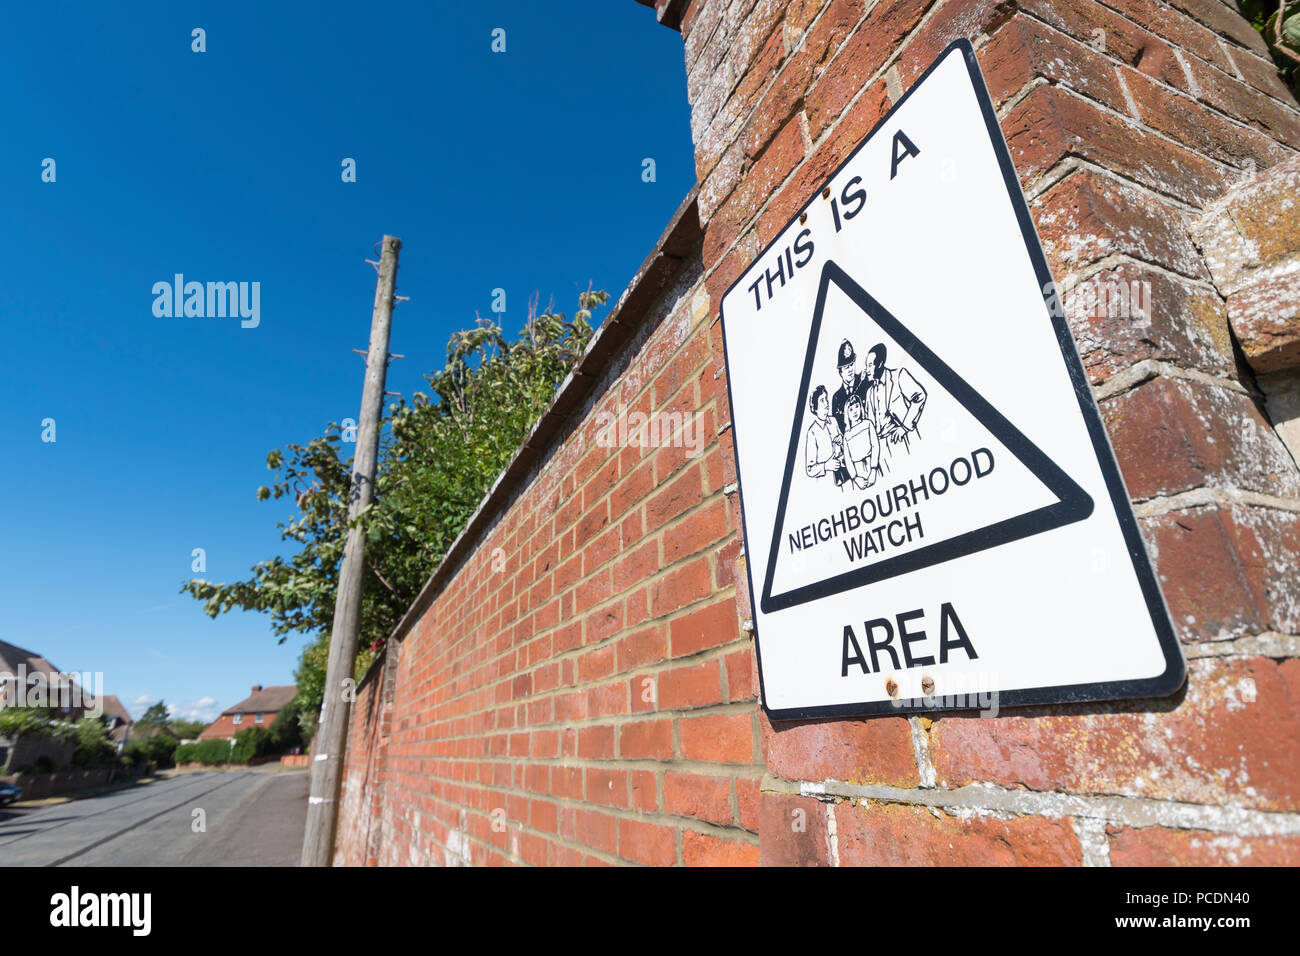 Neighbourhood watch sign on a wall at the end of a road in Littlehampton, West Sussex, England, UK. - Stock Image